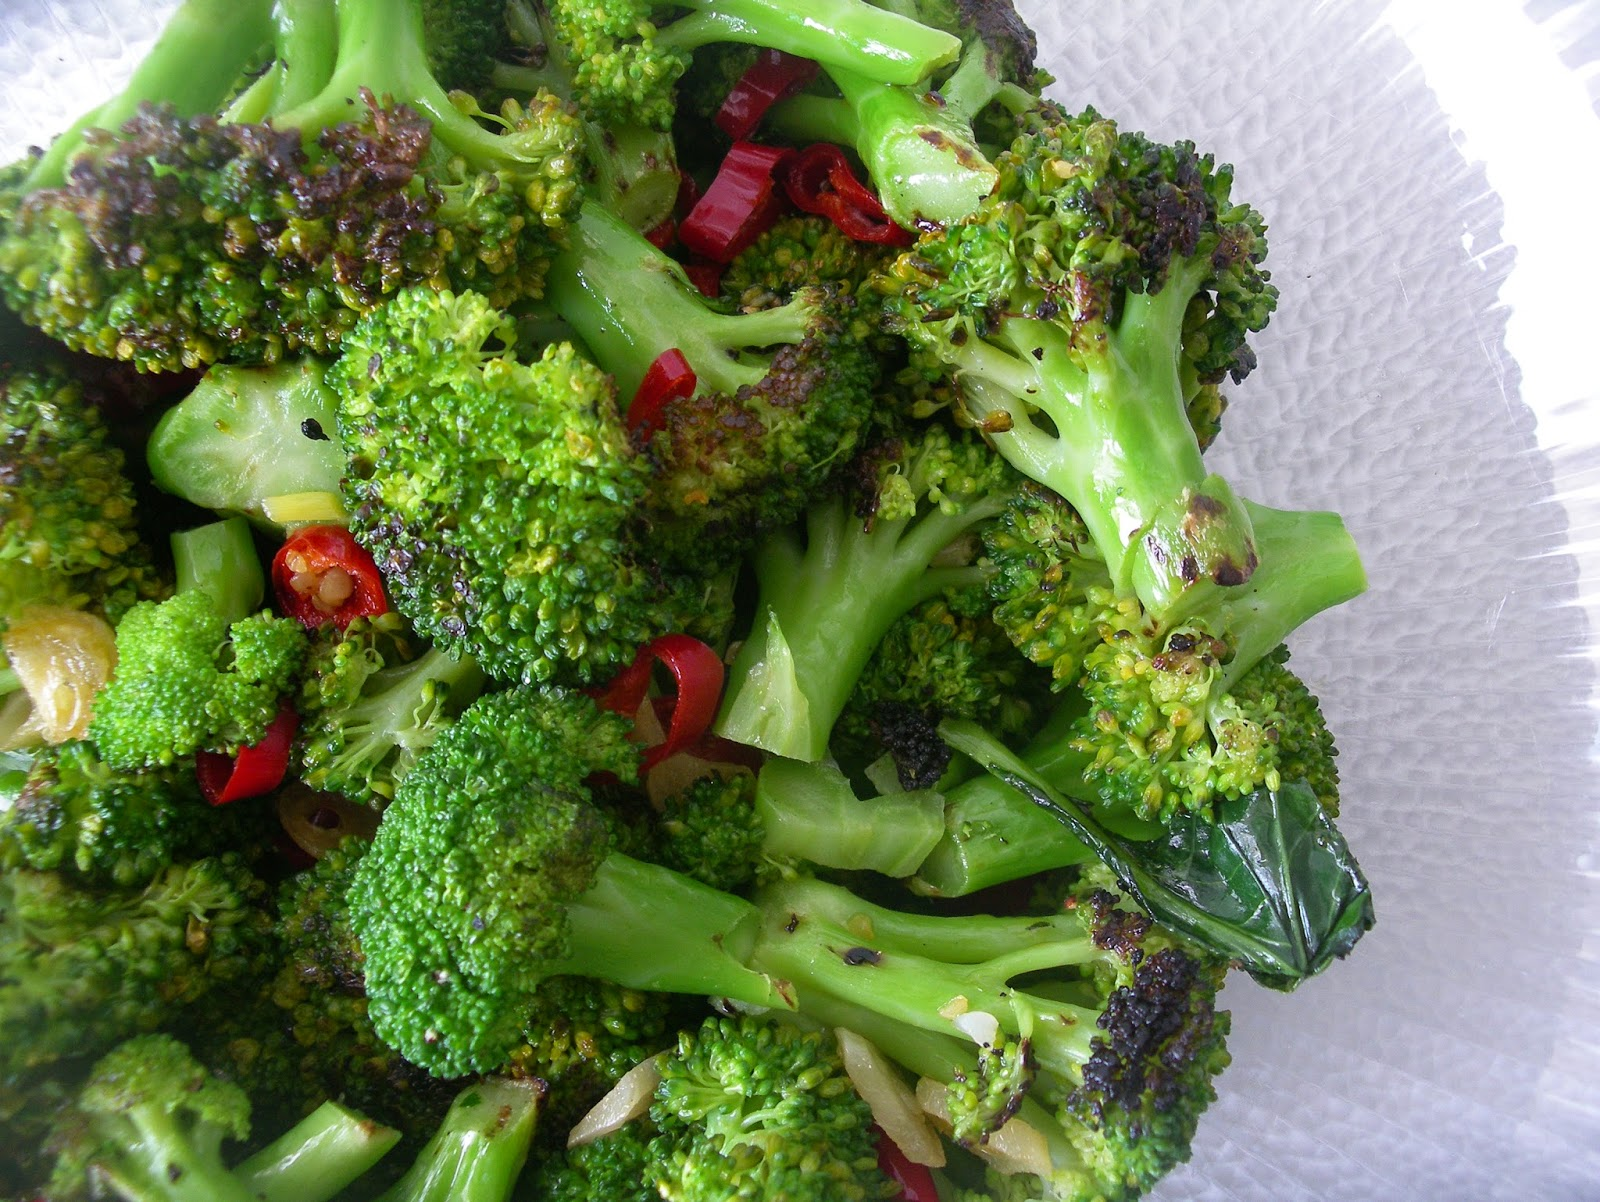 Grilled broccoli with chile and garlic